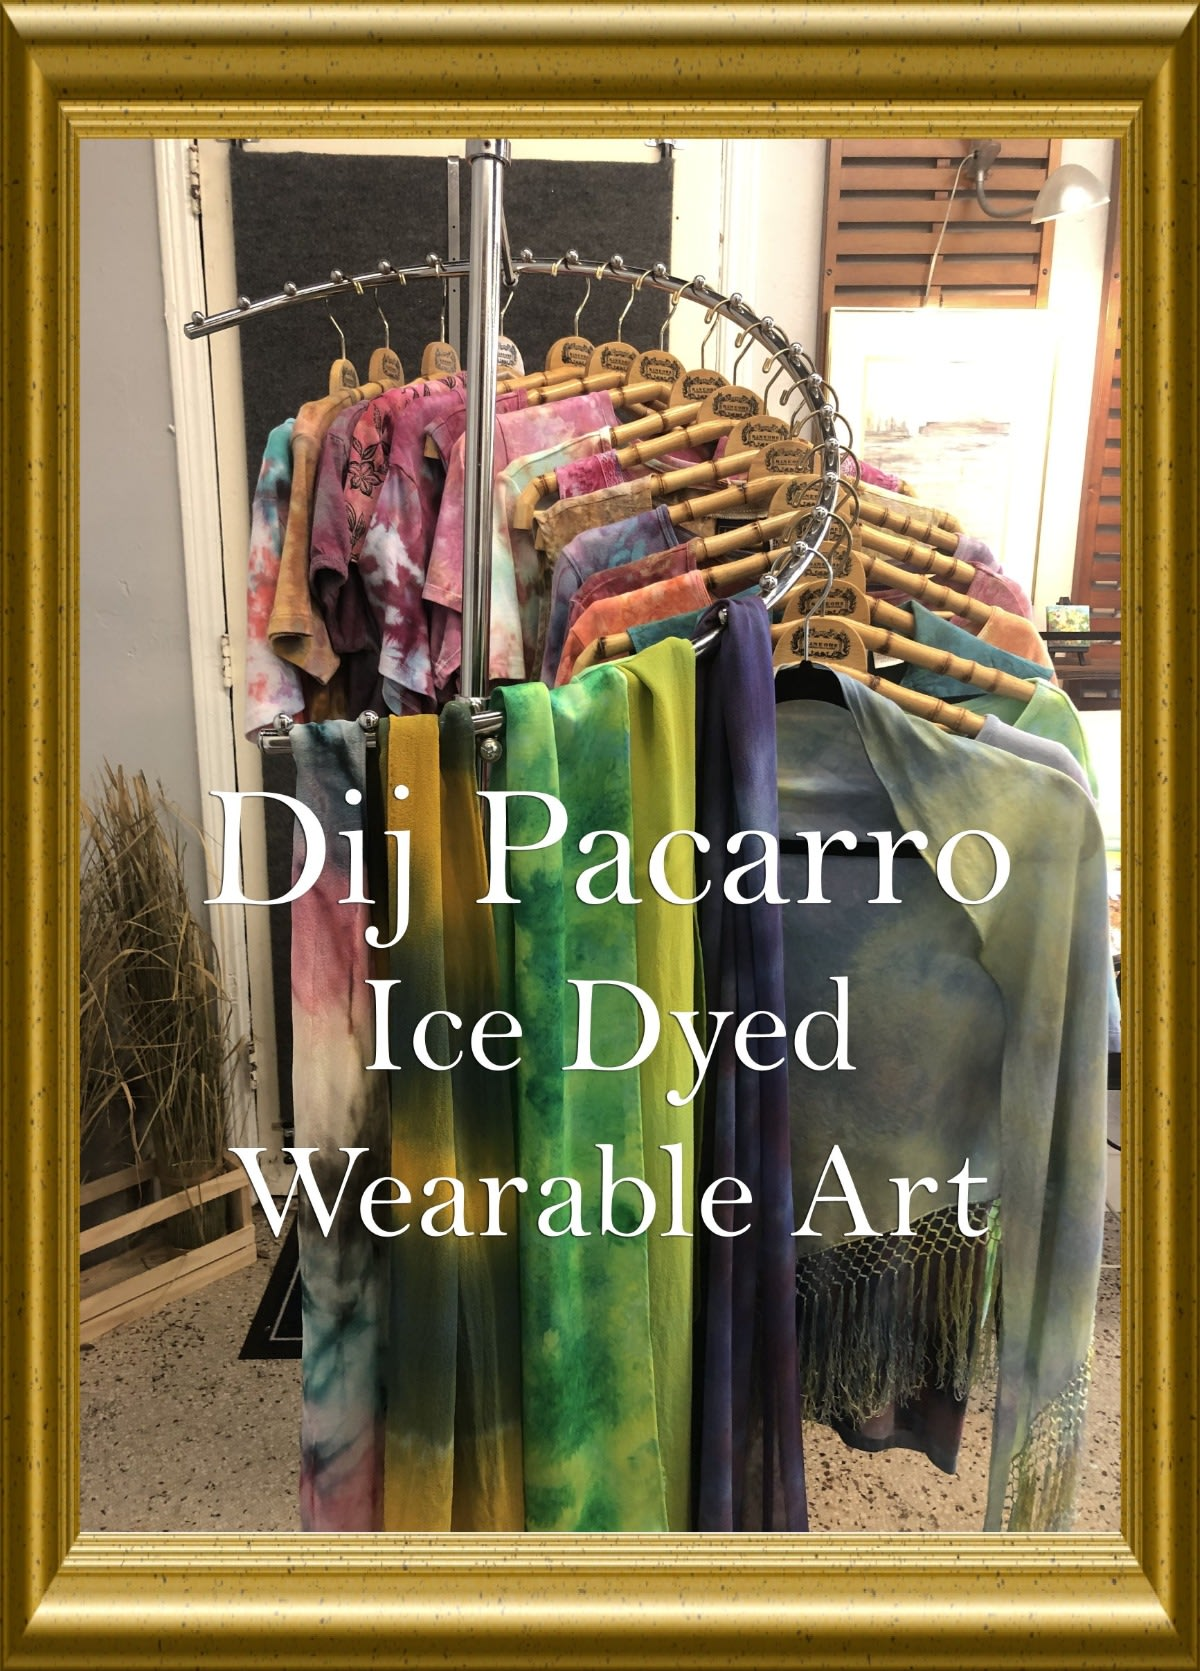 Dij Pacarro - Ice Dyed Wearable Art - Click Here